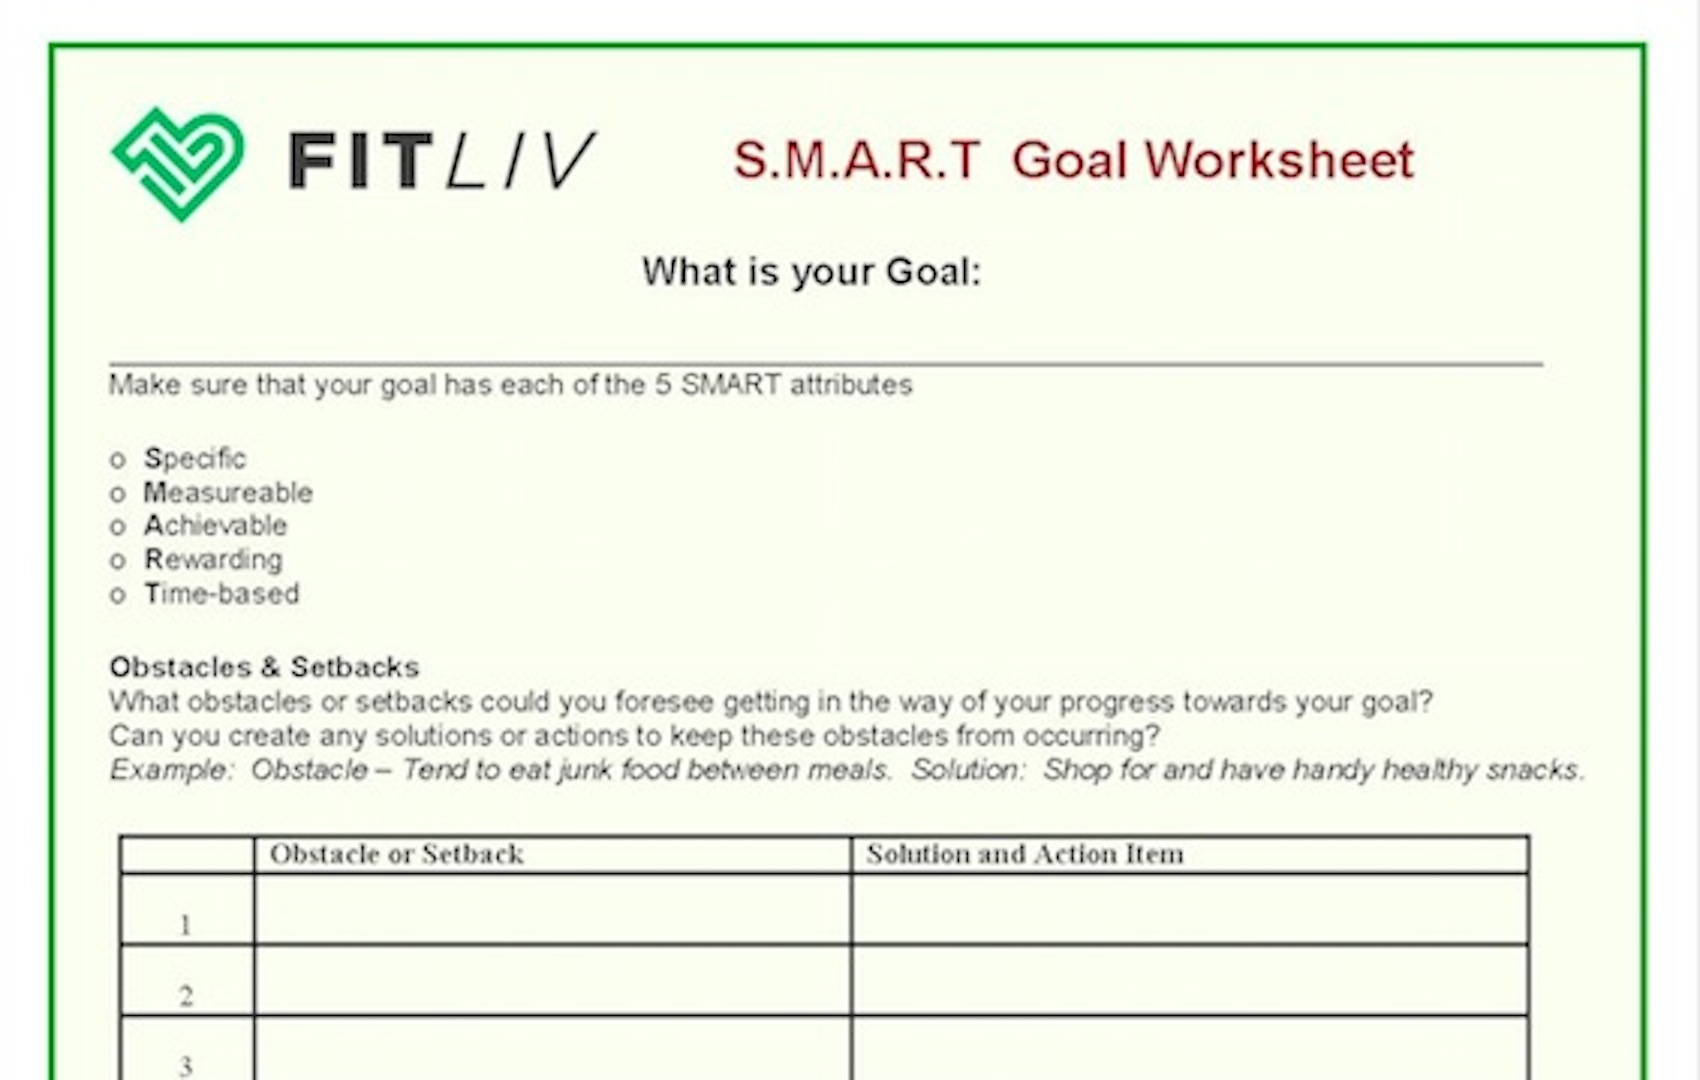 Download our SMART Goals Worksheet - Making it easy for you to create inspiring and attainable goals